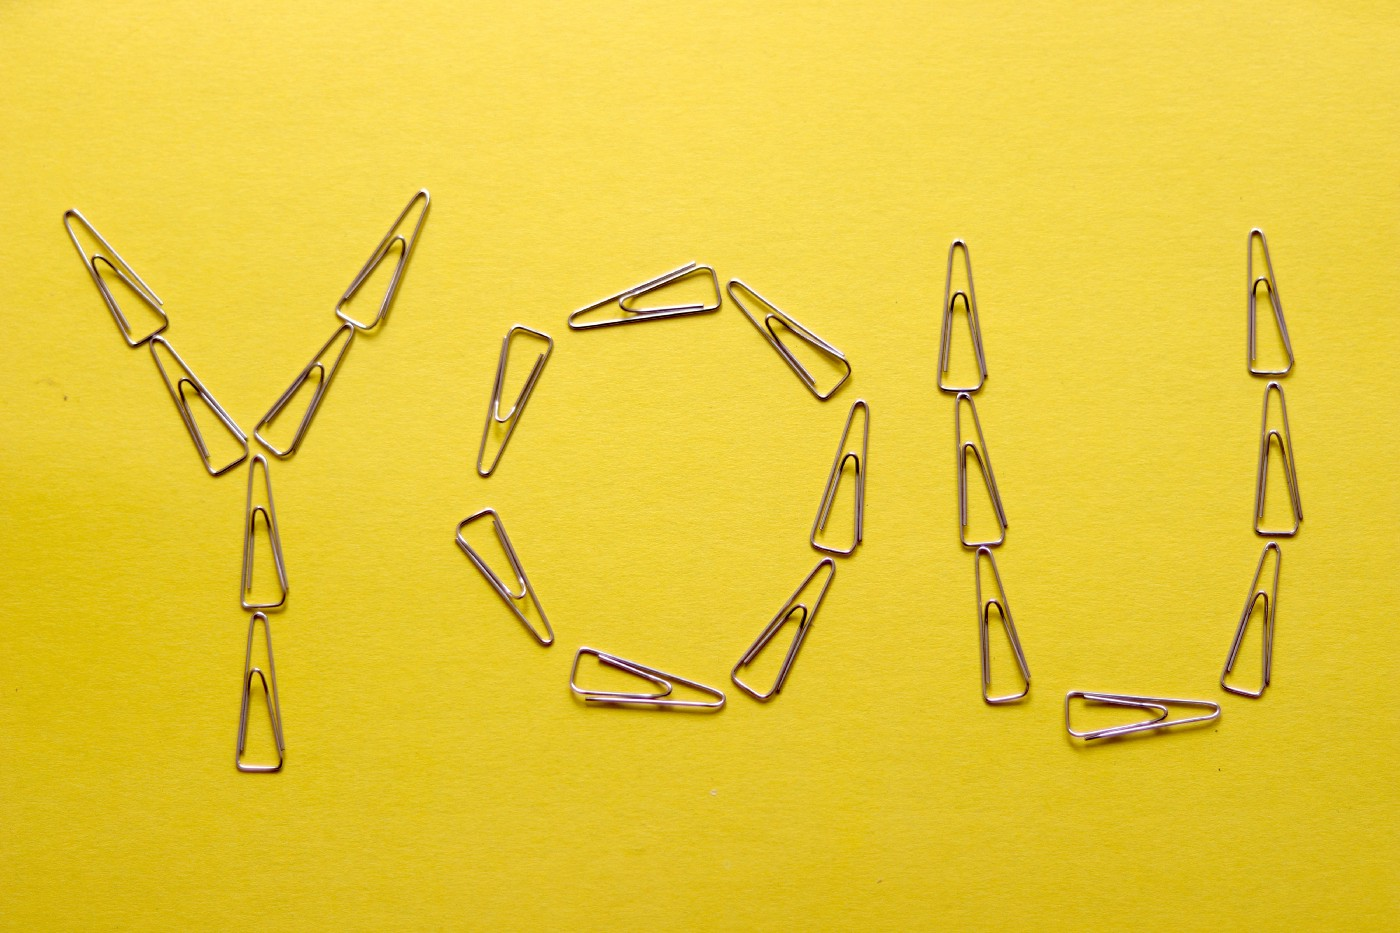 """The word """"You"""" spelled out with paper clips on a yellow background."""